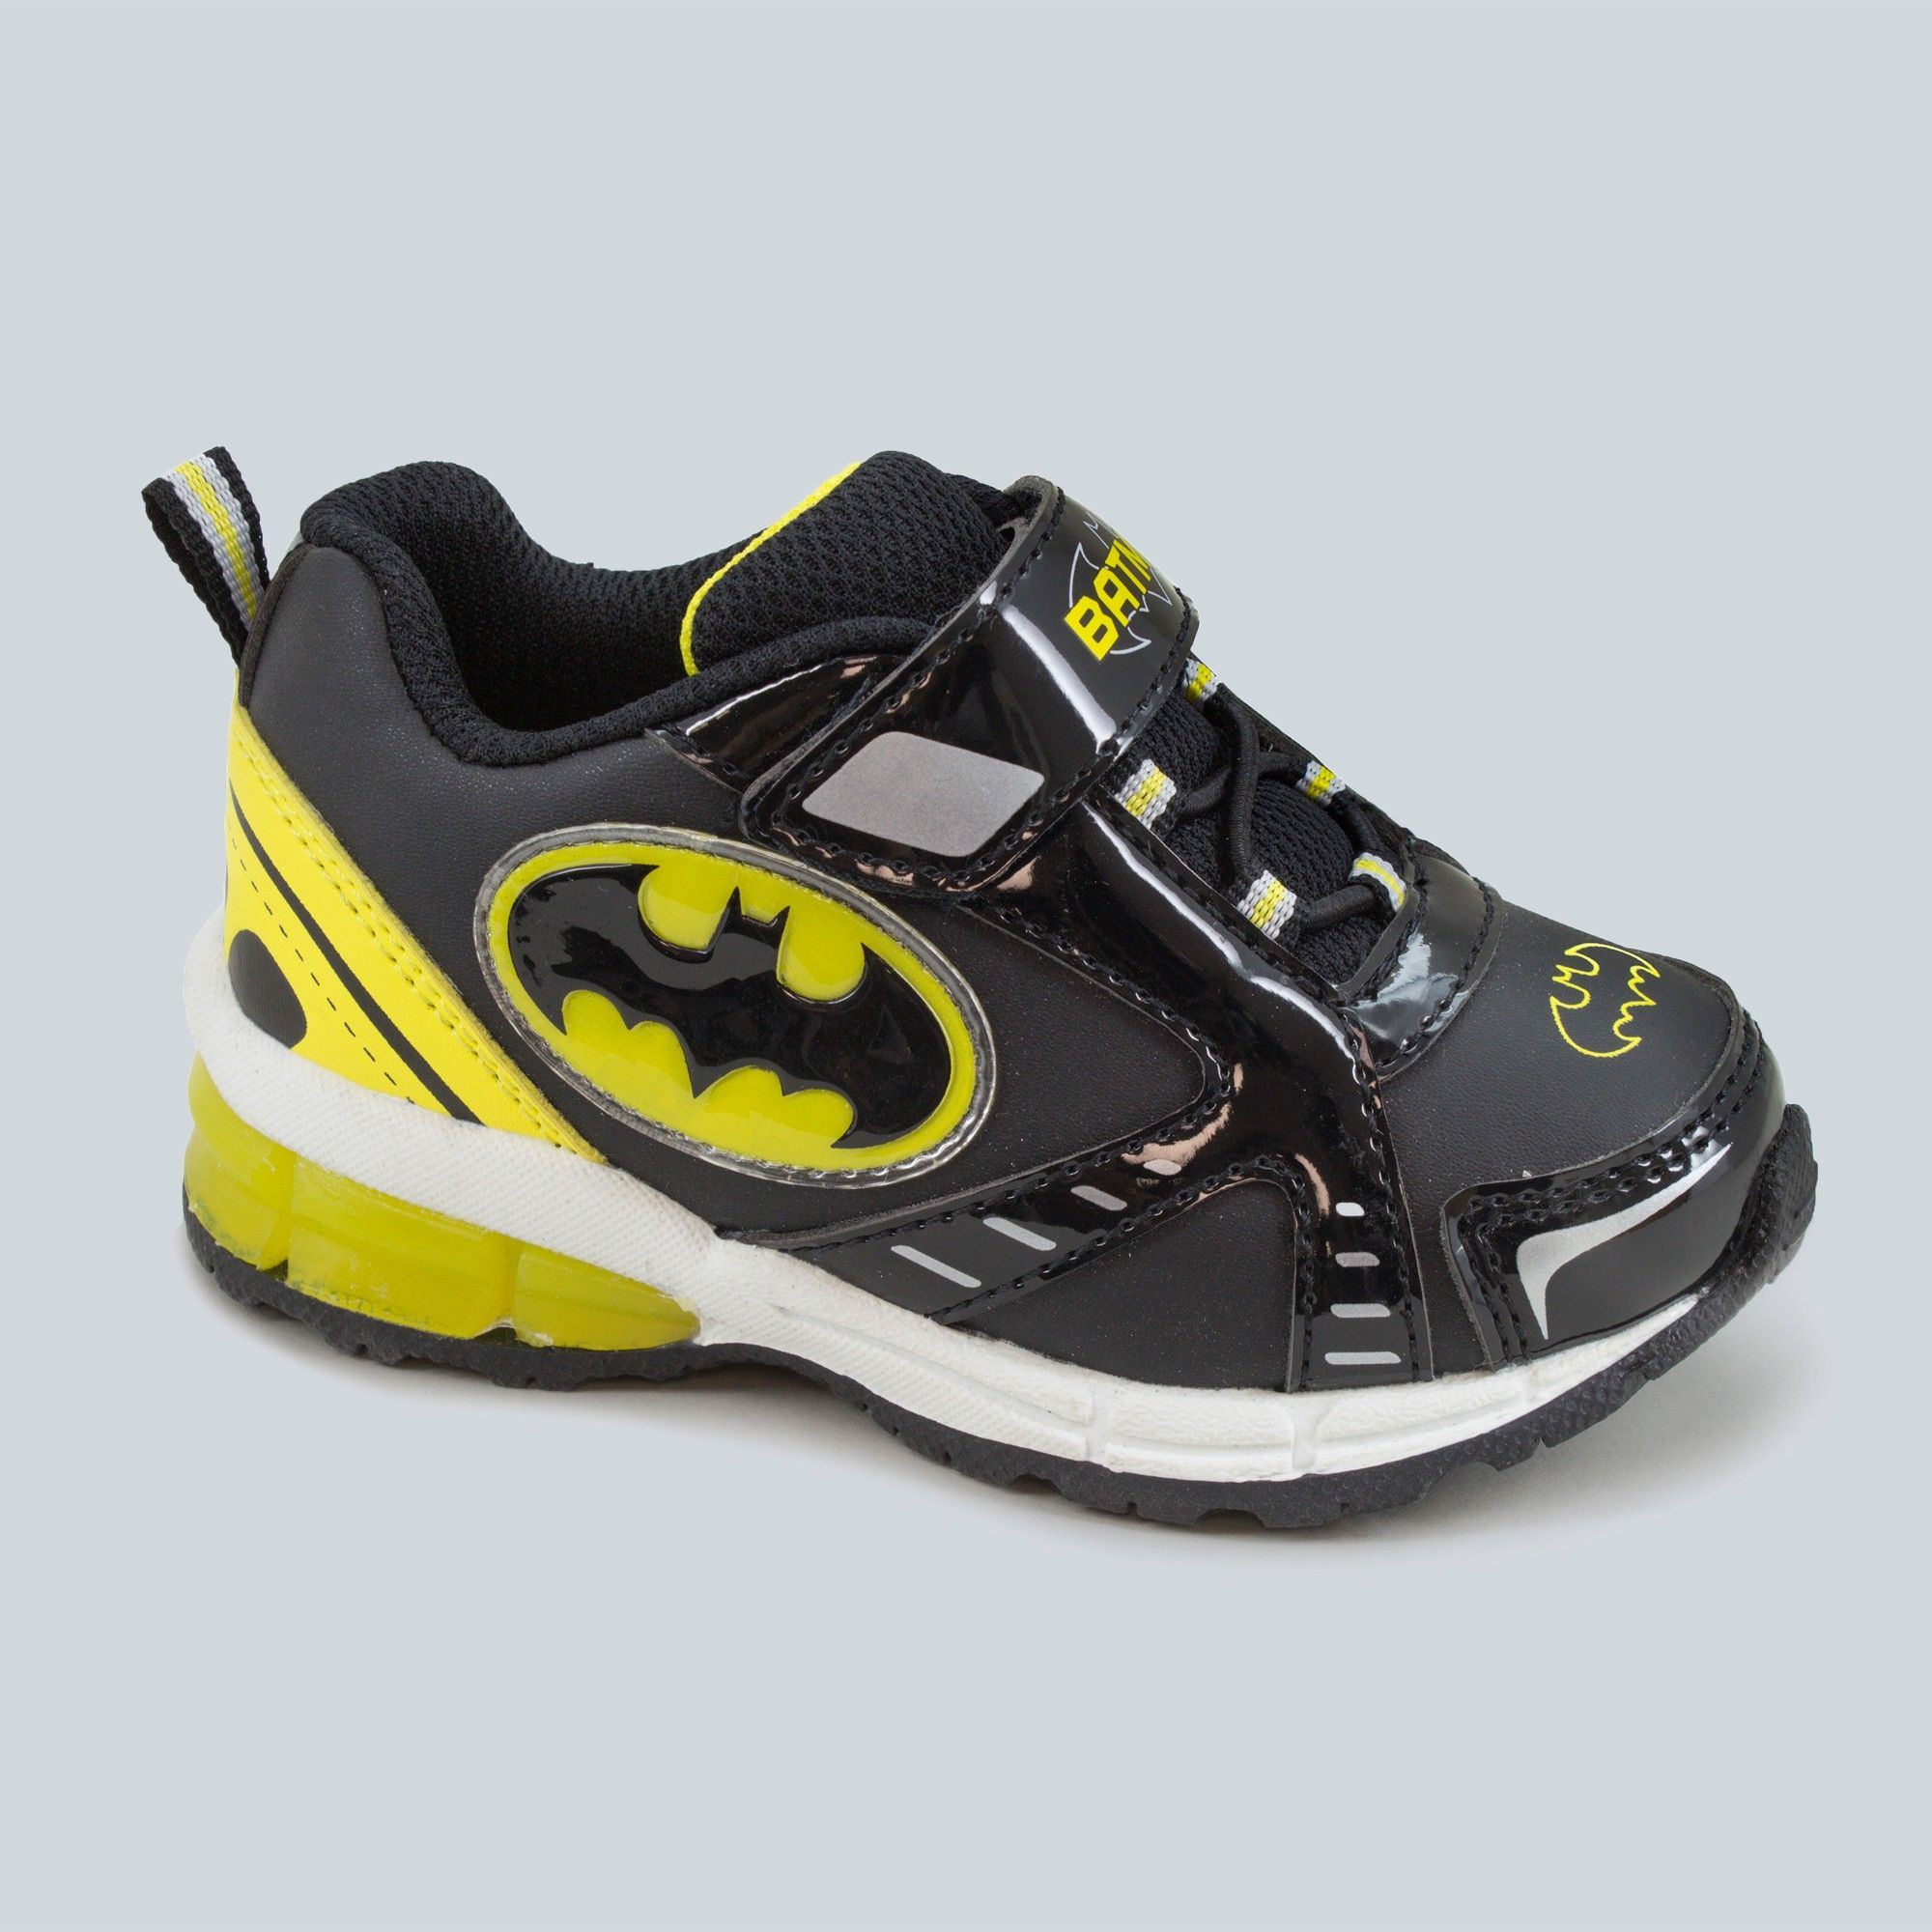 Boys shoes, Childrens shoes, Toddler boys